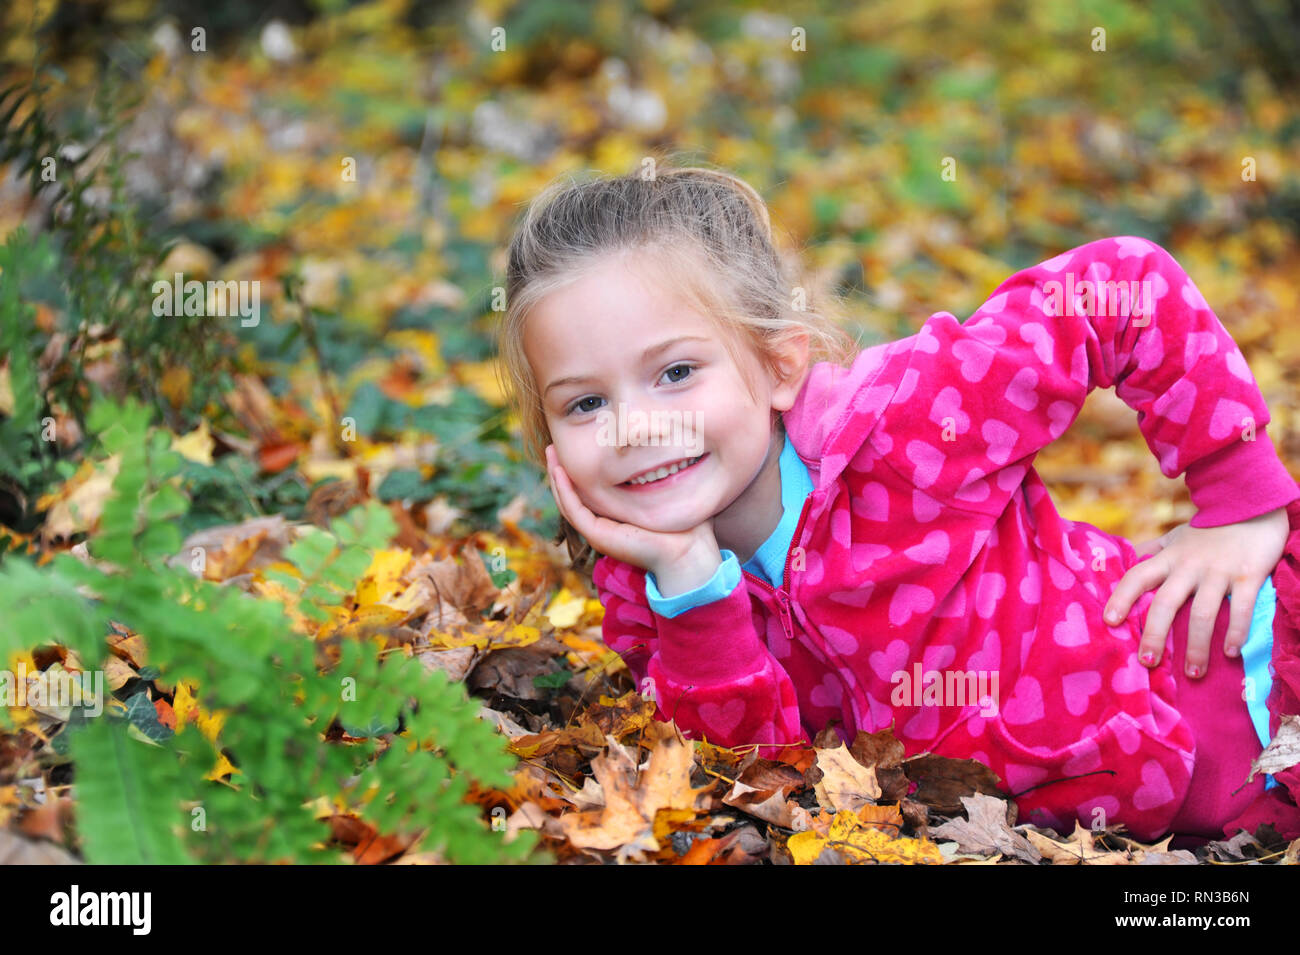 Beautiful young girl plays in the leaves outdoors on a Fall day.  She is wearing hot pink and leaning on an elbow surrounded by Fall color. - Stock Image